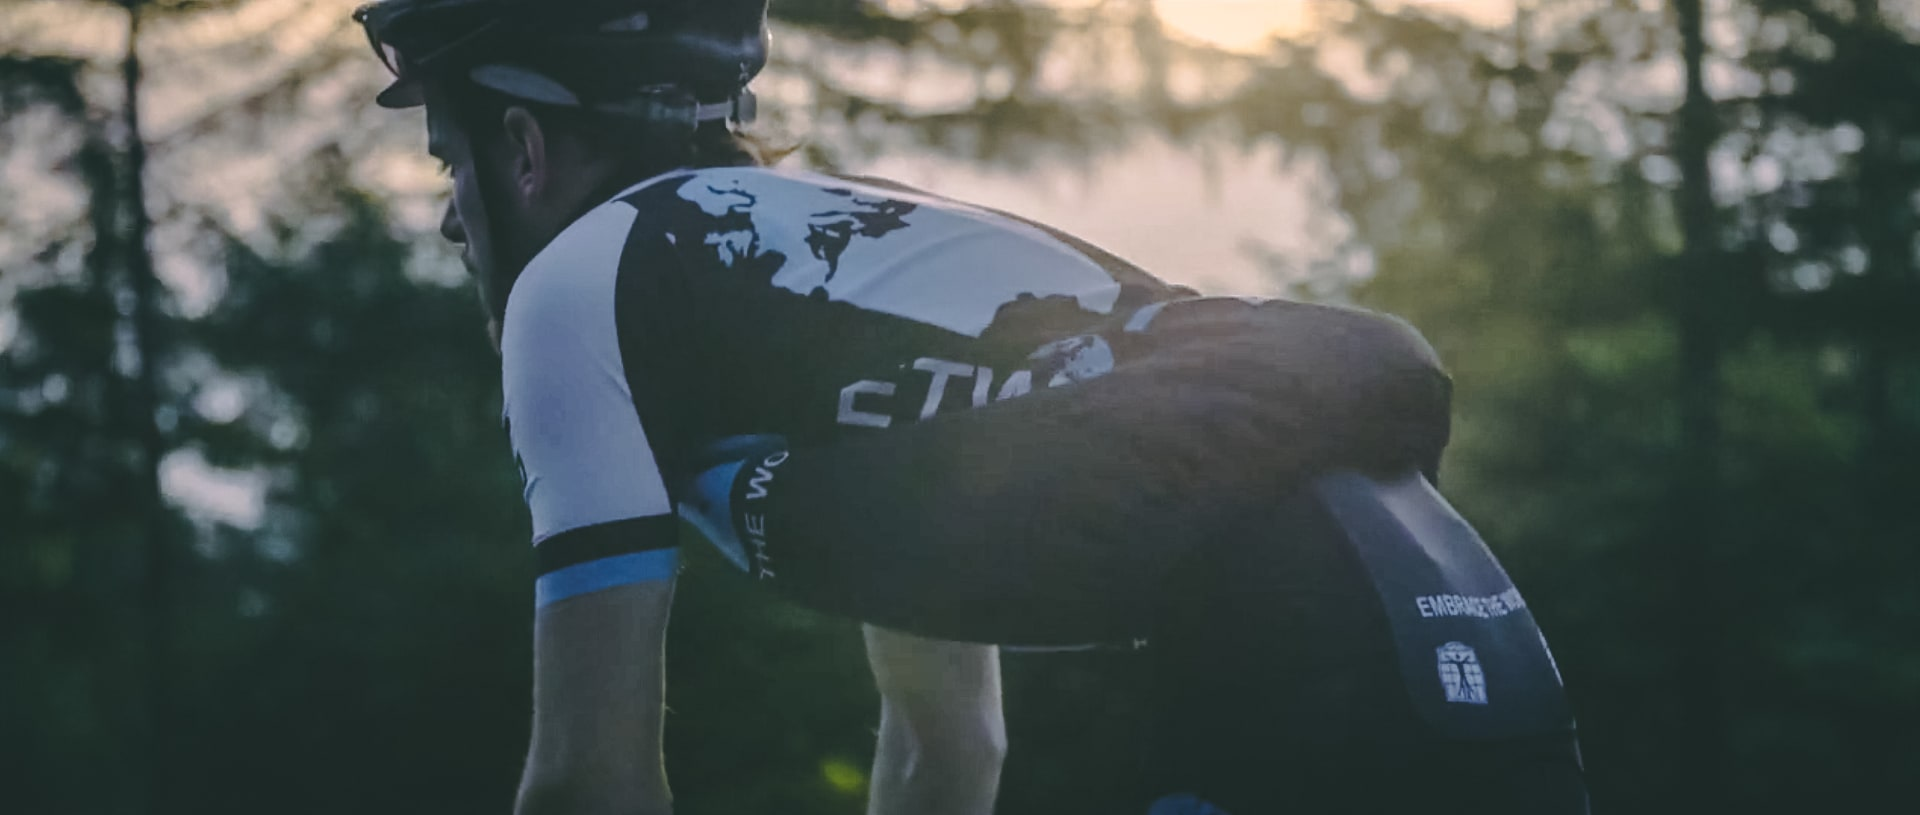 EMBRACE THE WORLD CYCLING - Commercial